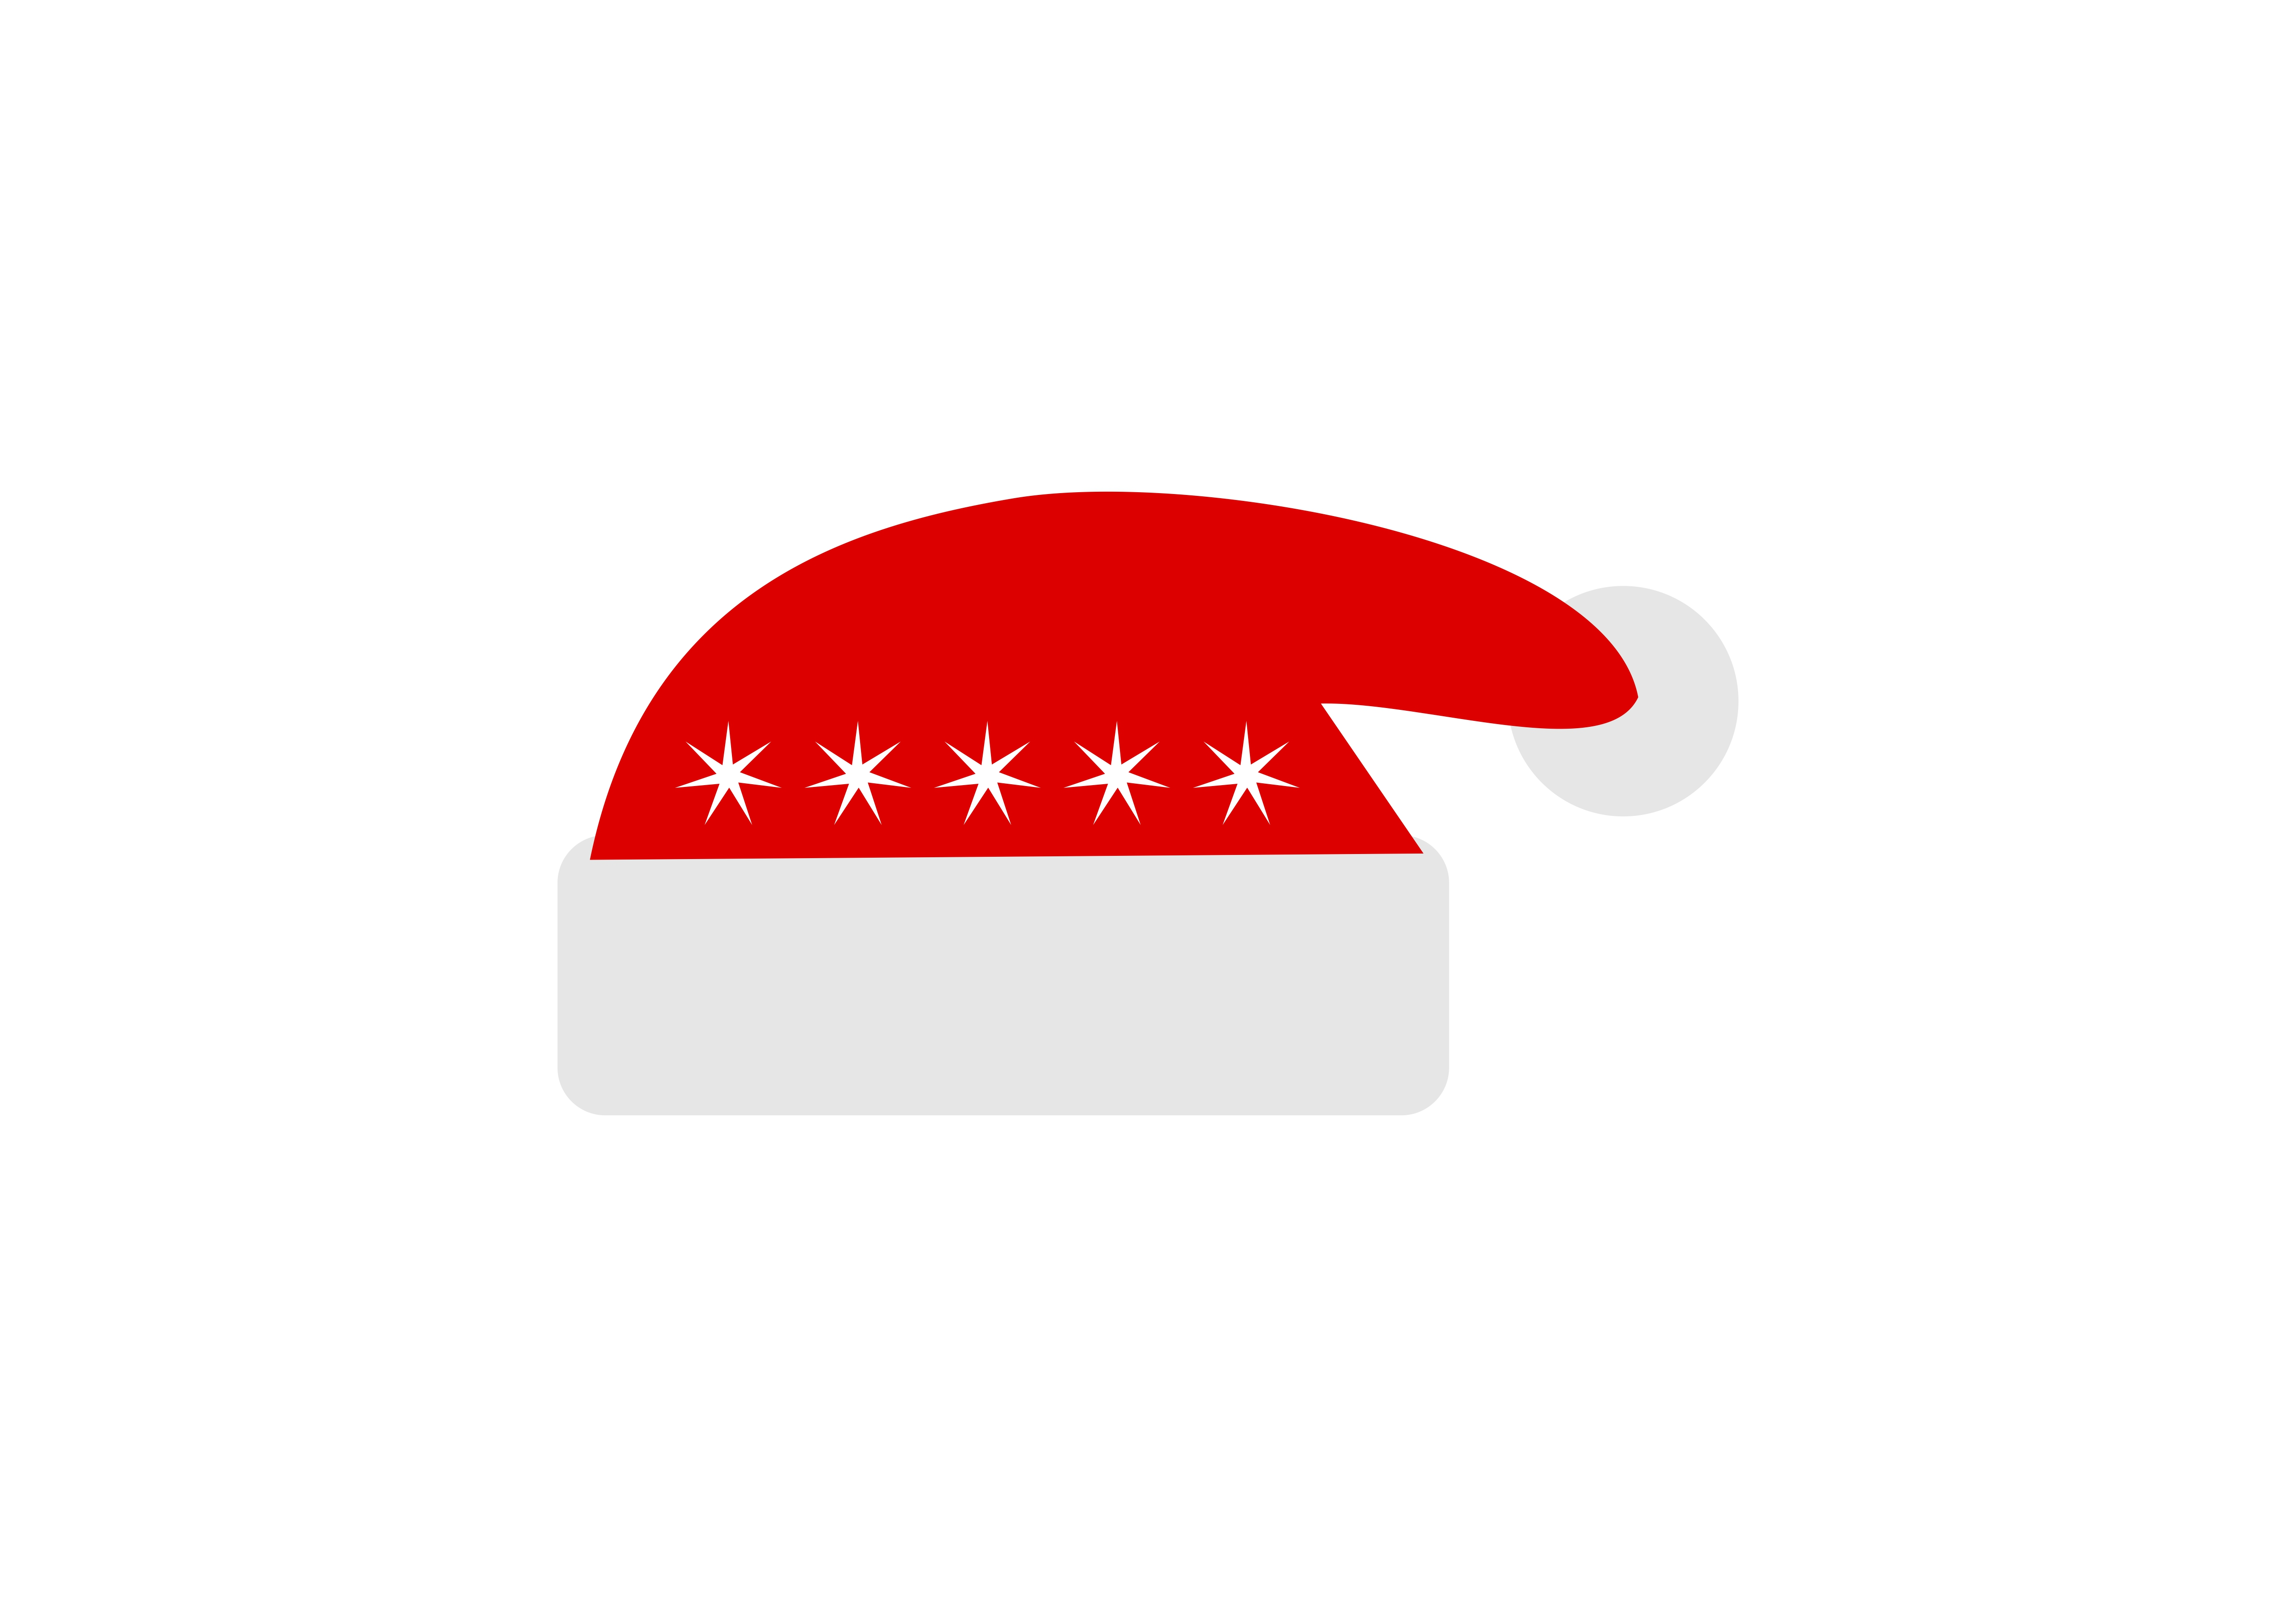 Download Free Santa Hat Christmas Atribute Logo Graphic By Deemka Studio for Cricut Explore, Silhouette and other cutting machines.